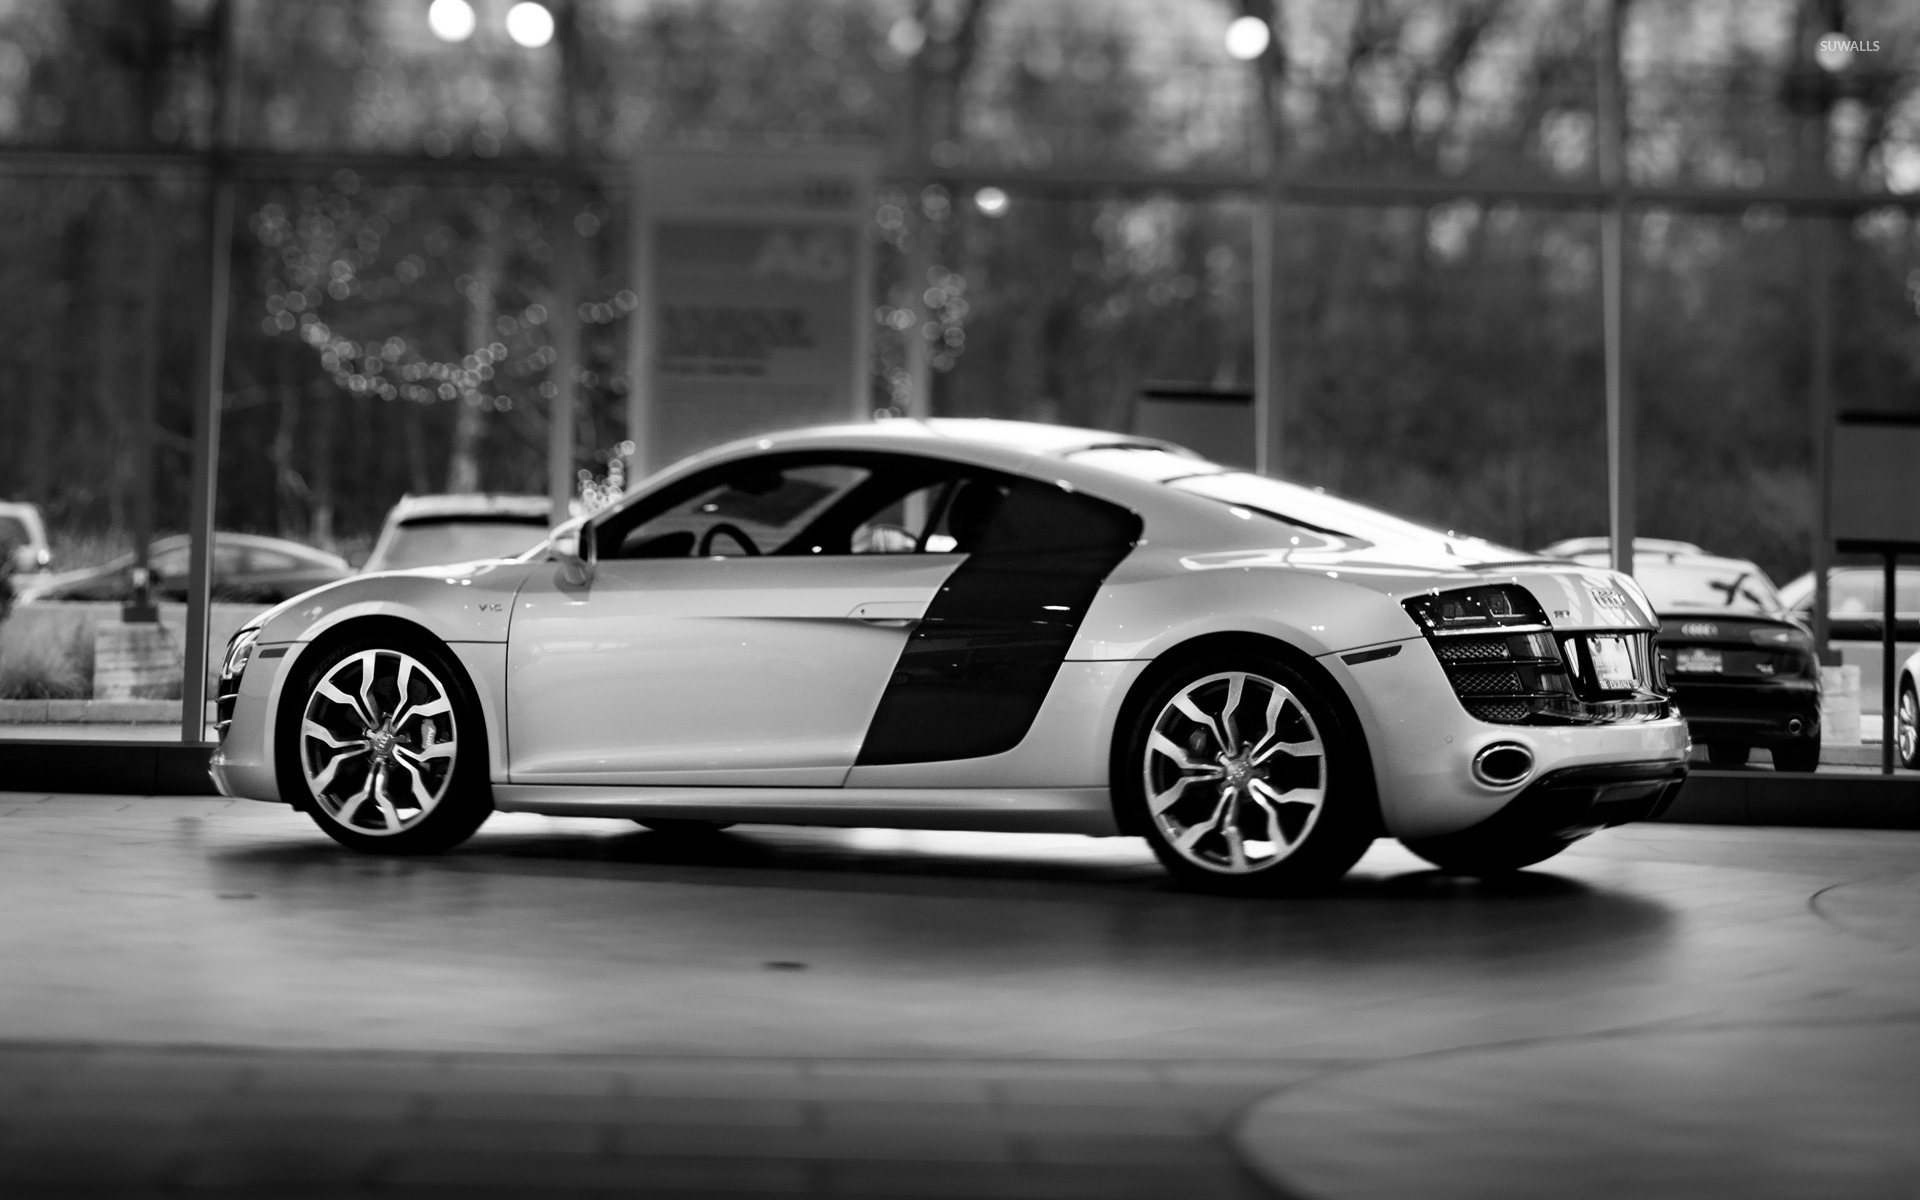 Audi R8 V10 wallpaper   Car wallpapers   16354 1920x1200